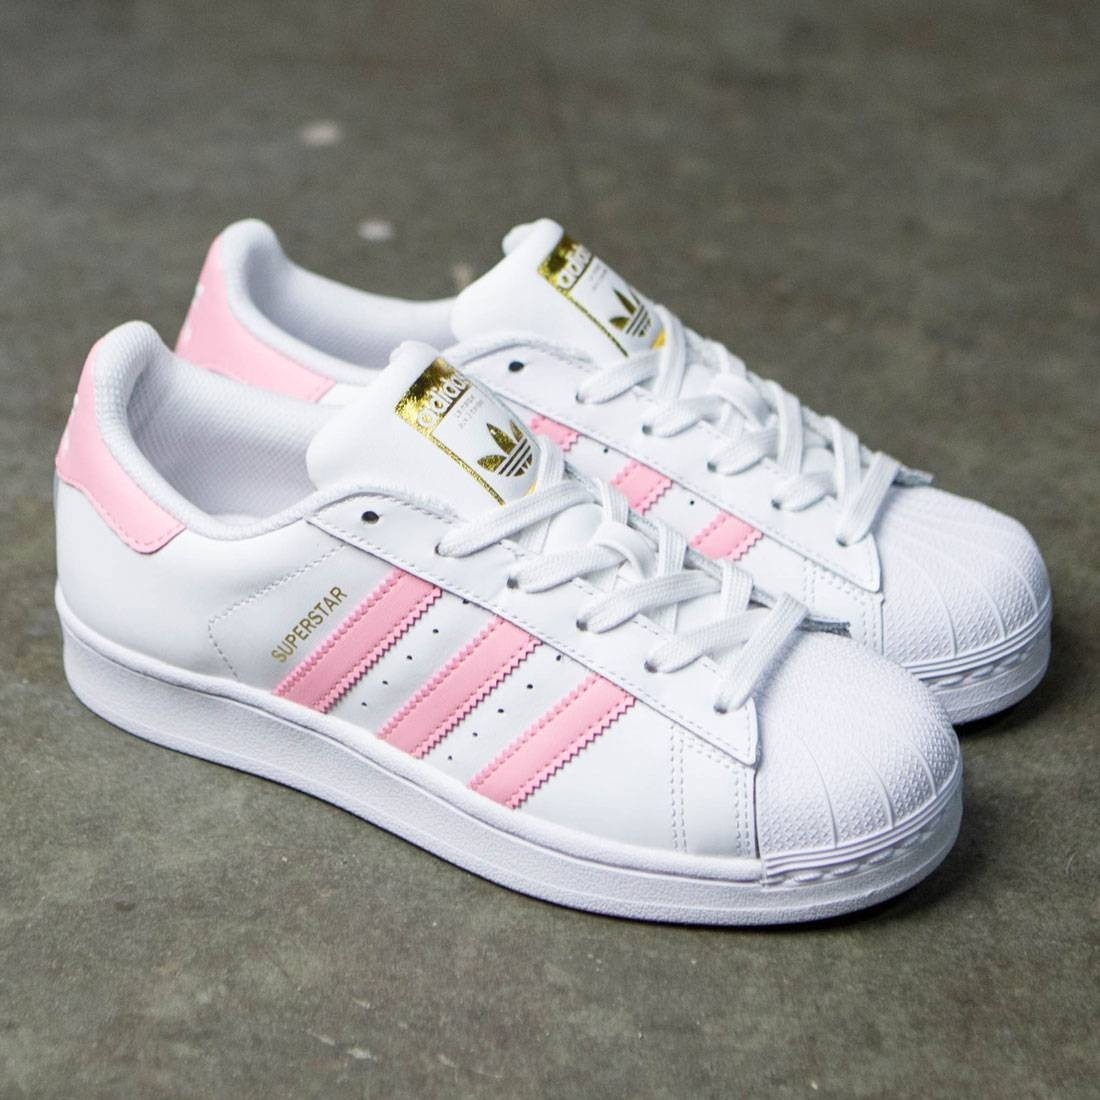 Mujer Tenis Clasicos Adidas 2018 Superstar 0mn8OvNw